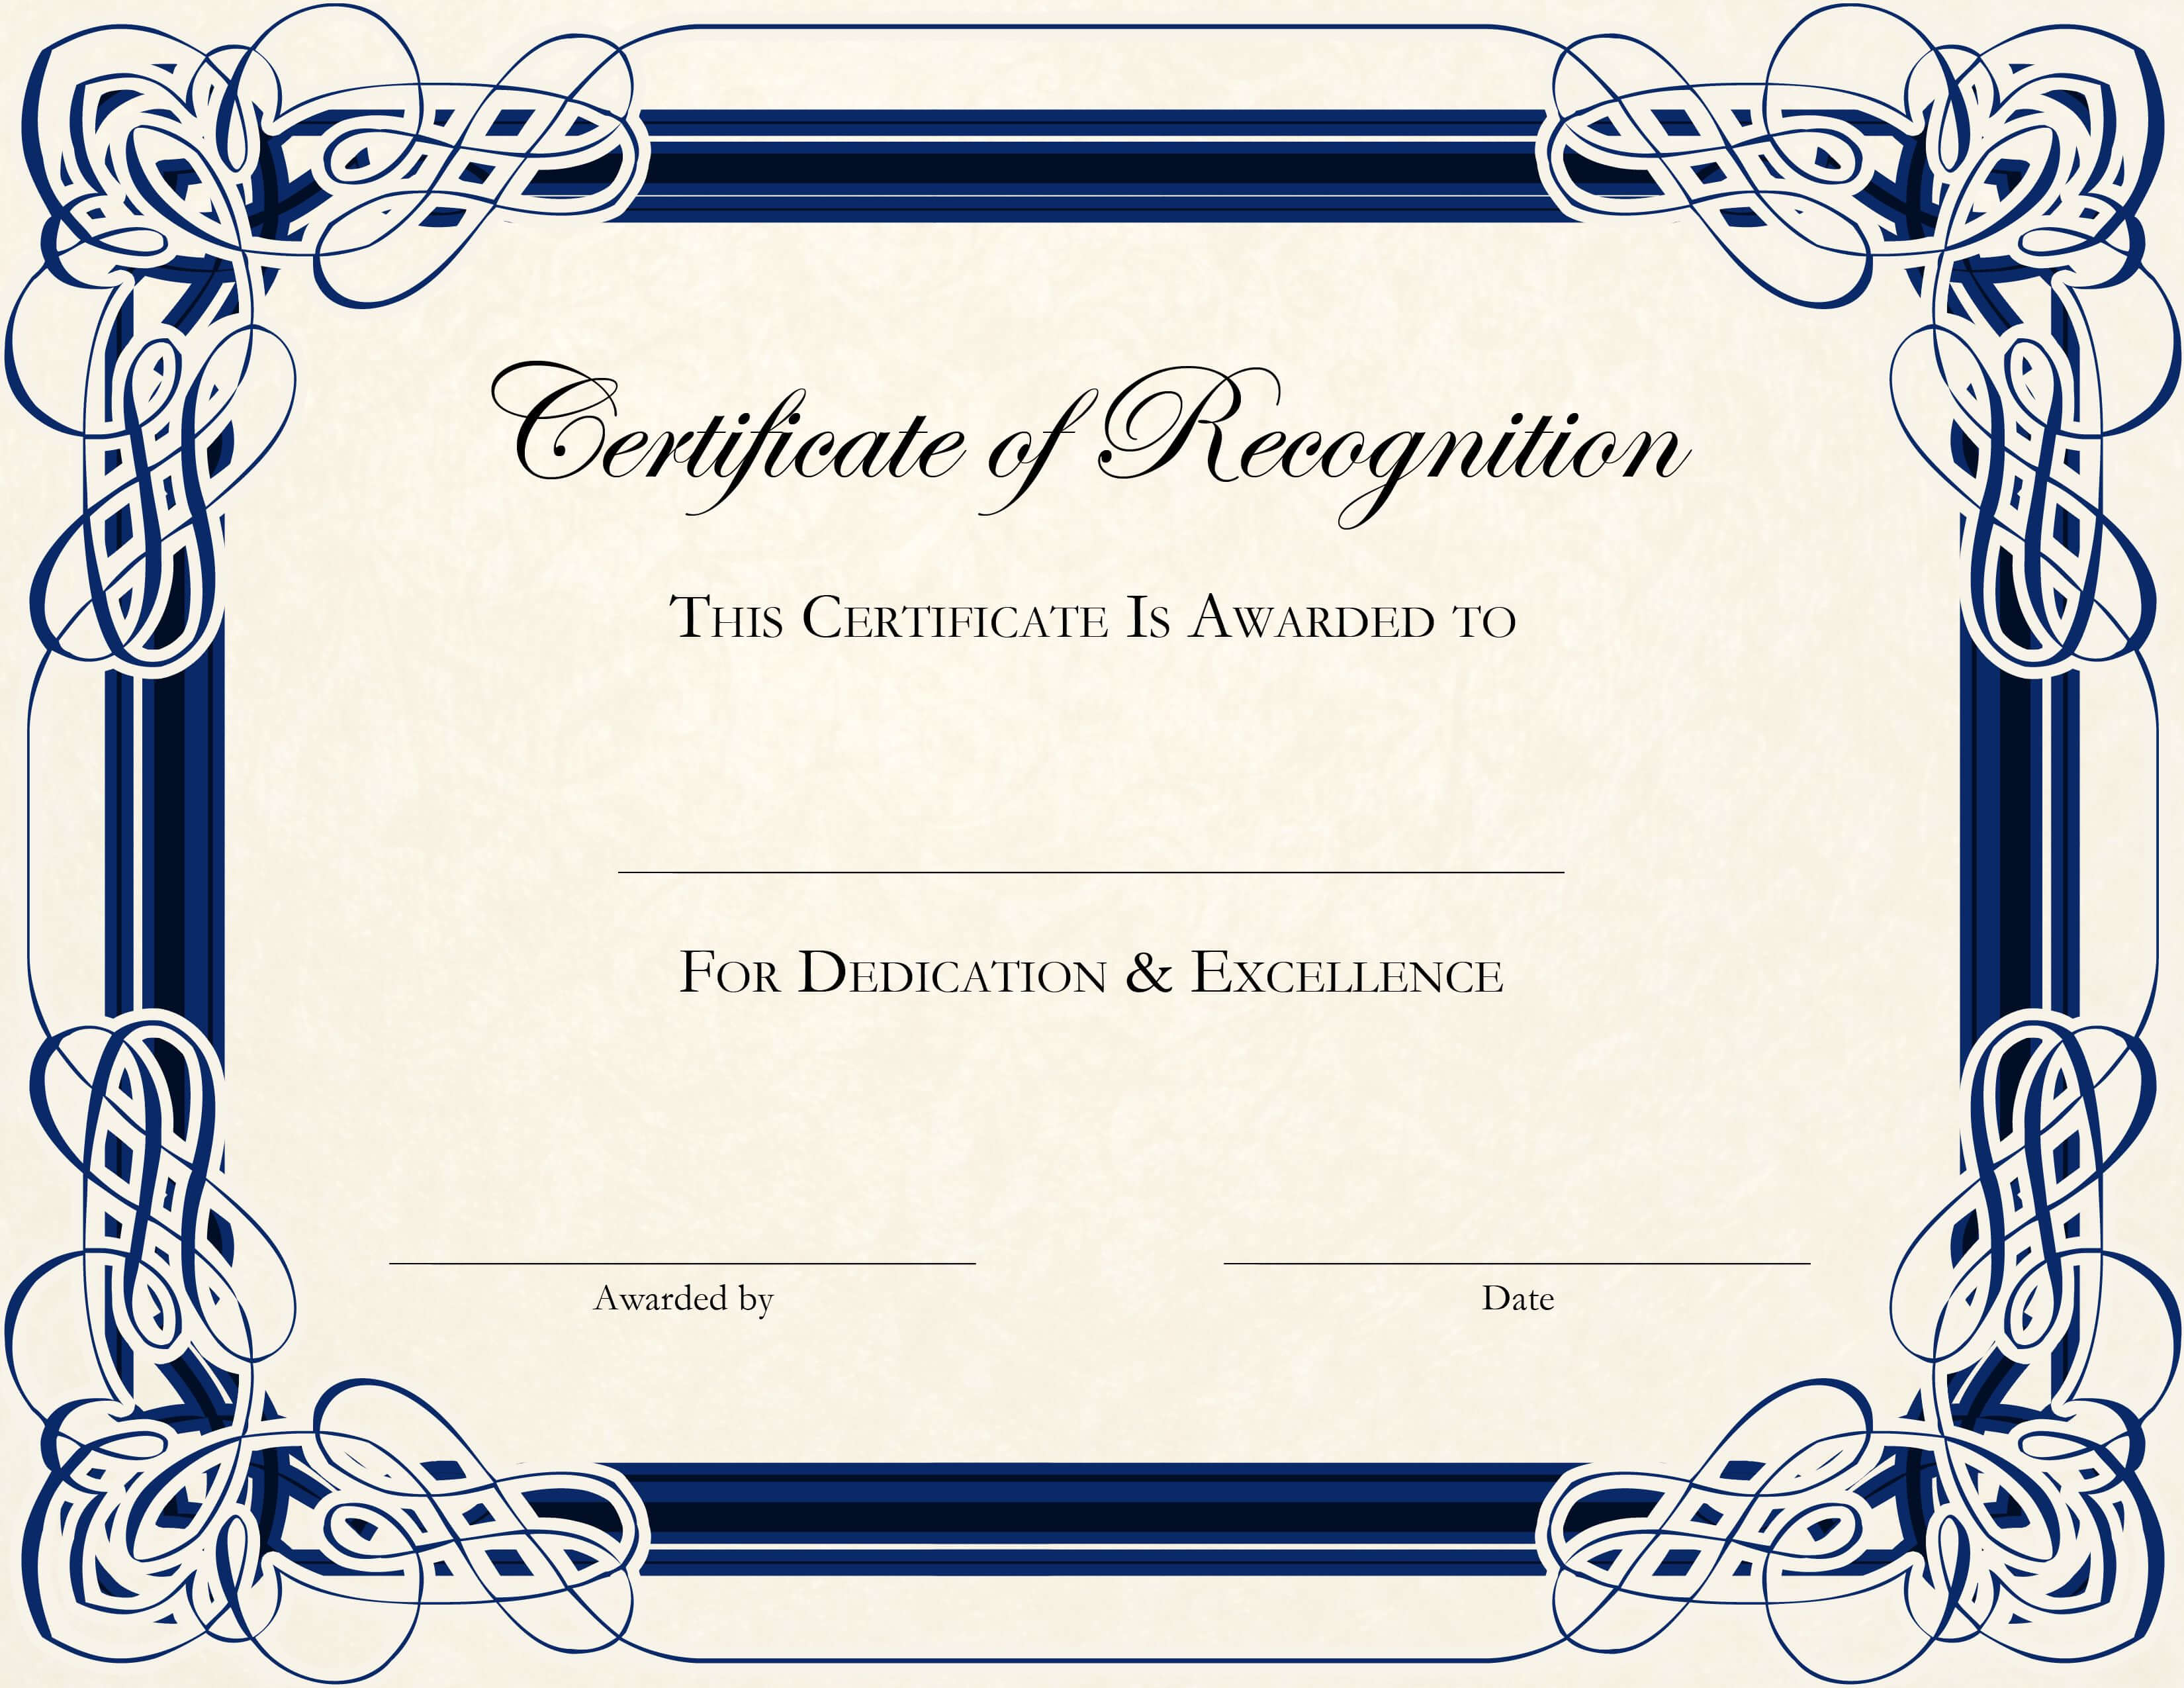 Certificate Template Designs Recognition Docs | Blankets Pertaining To Template For Certificate Of Appreciation In Microsoft Word